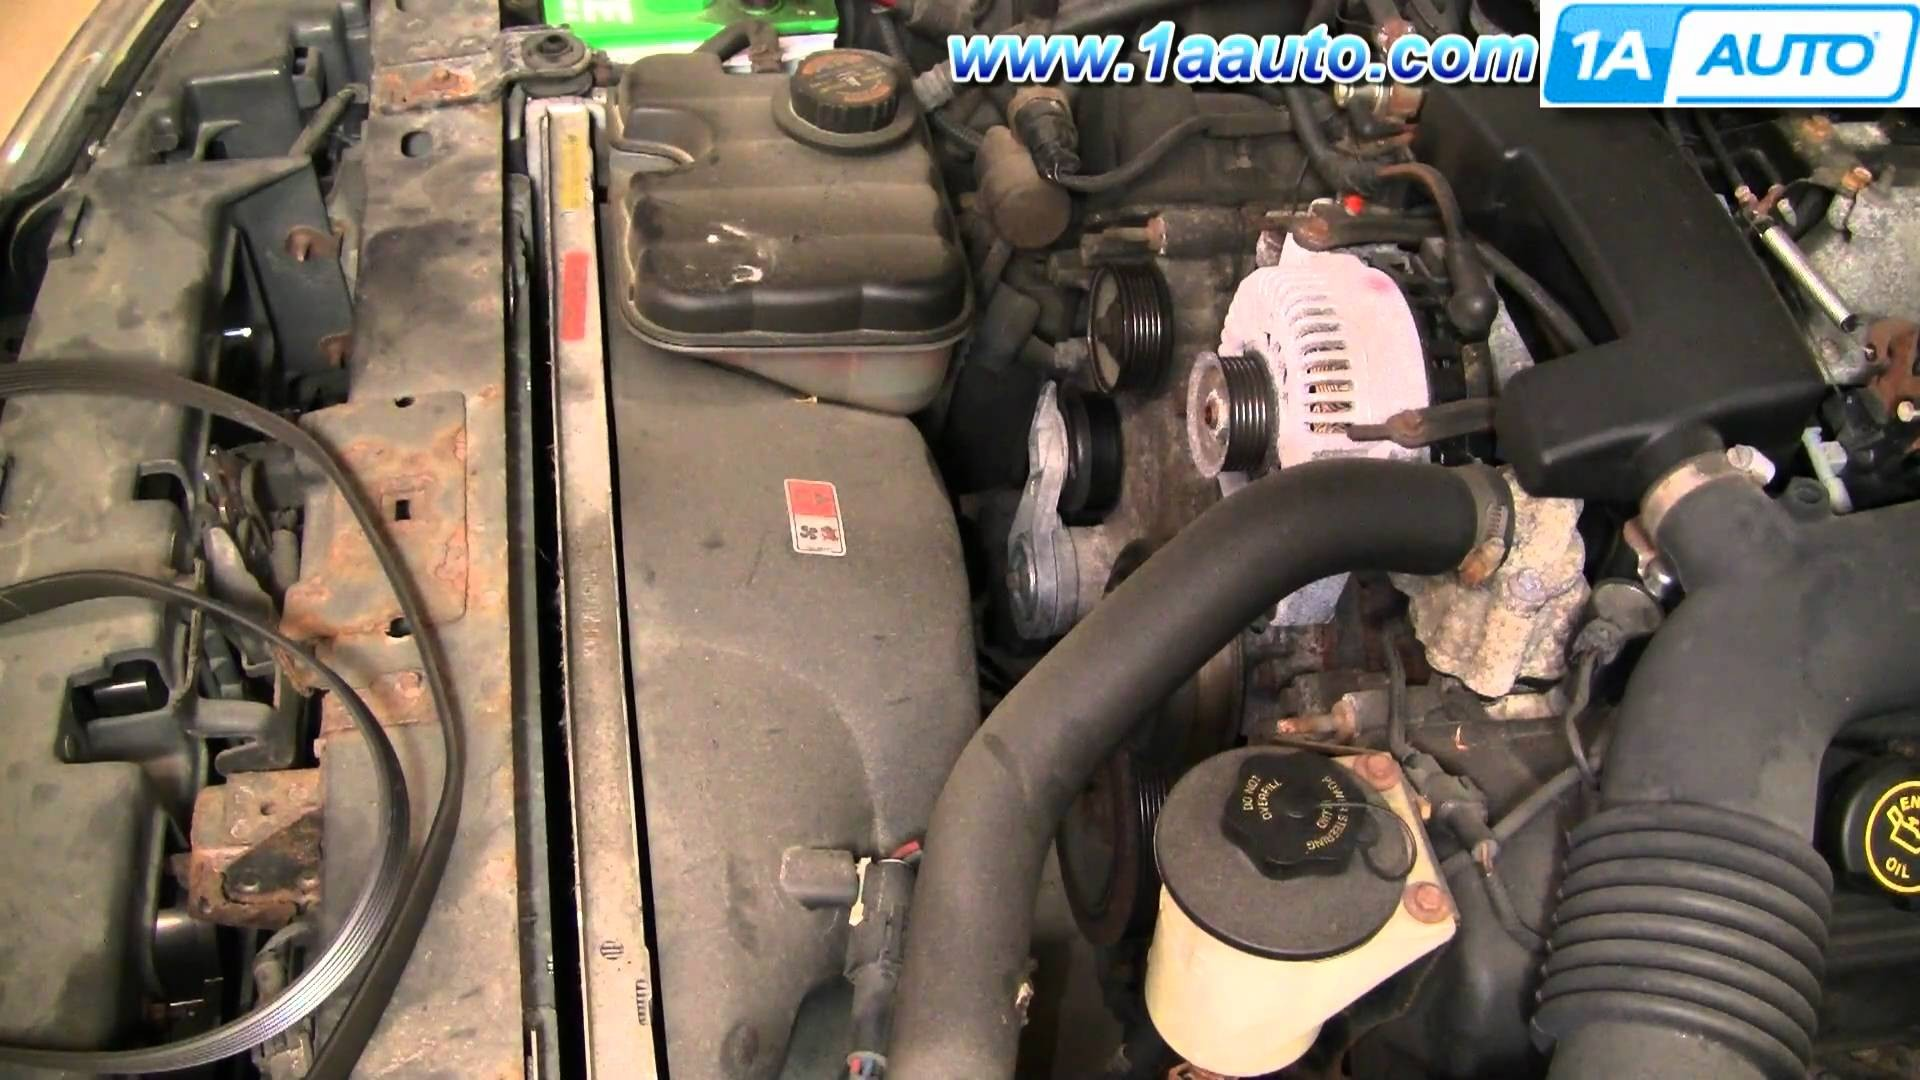 2000 Lincoln Navigator Engine Diagram Removing Thermostat 2001 Ls V6 How To Install Repair Replace Serpentine Belt Tensioner Town Of